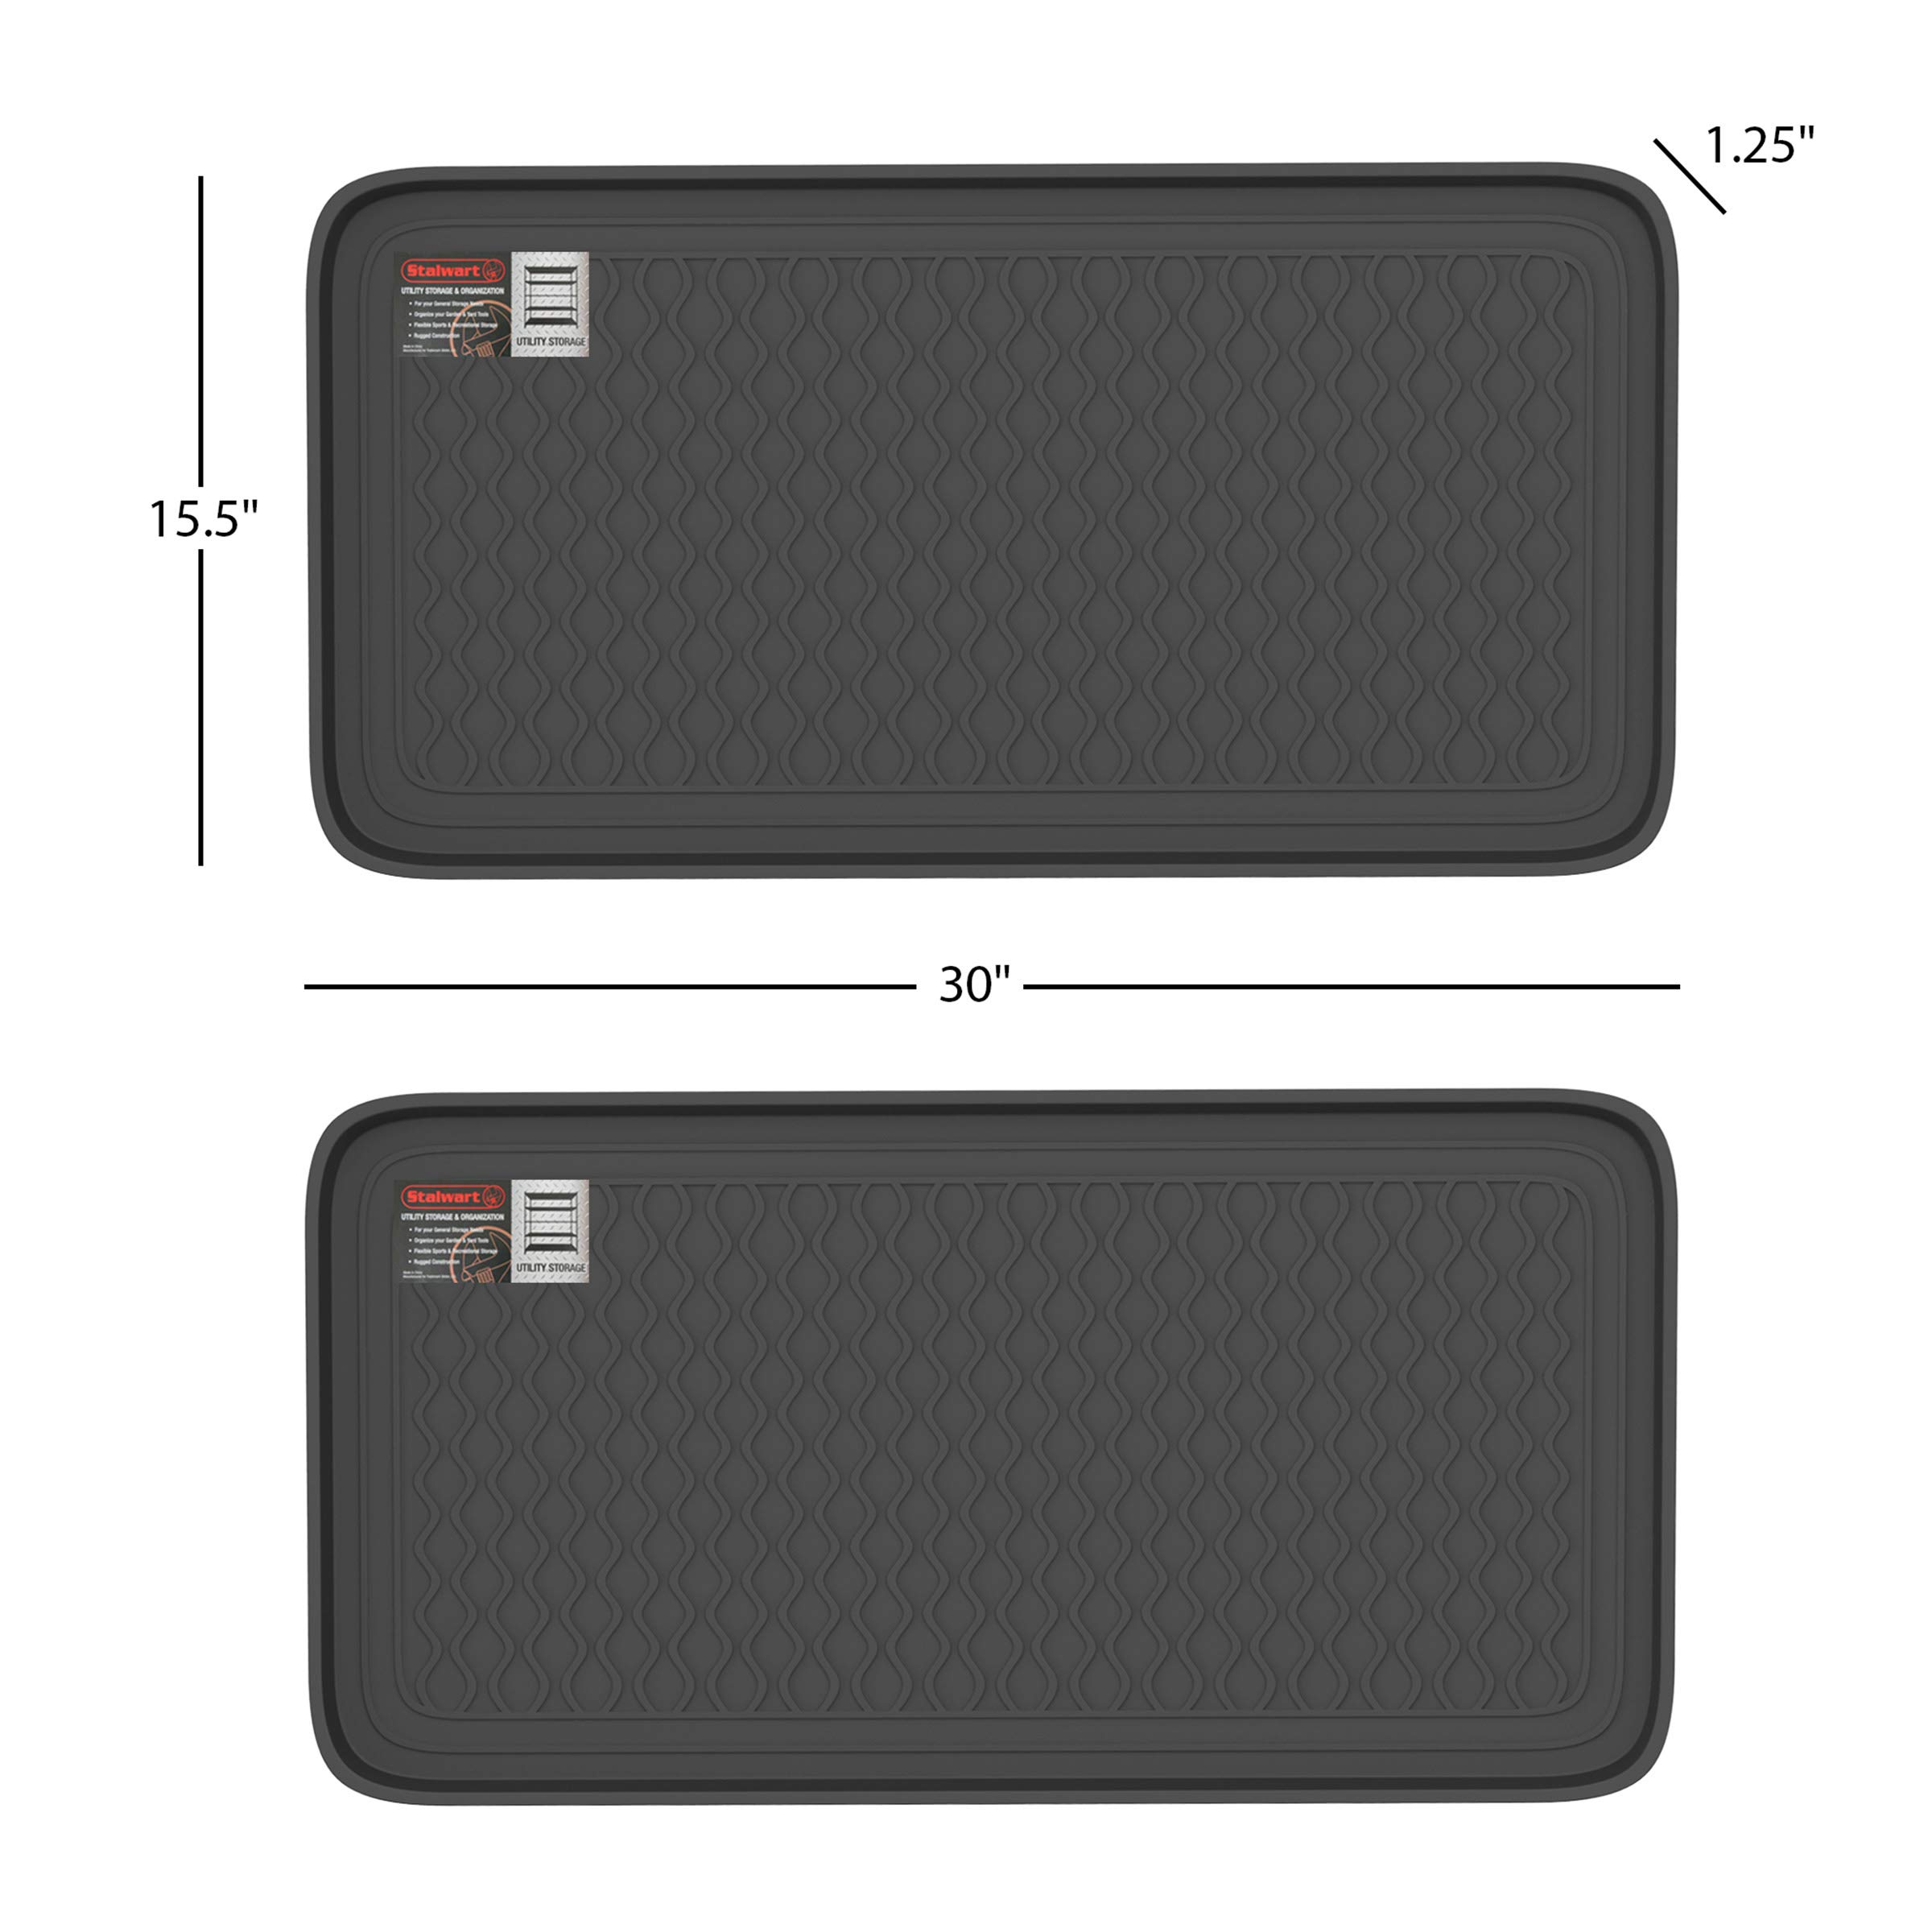 Stalwart 75-ST6102 Weather Boot Tray-Large Water Resistant Plastic Utility Shoe Mat for Indoor and Outdoor Use in All Seasons (Set of Two, Black) by Stalwart (Image #2)